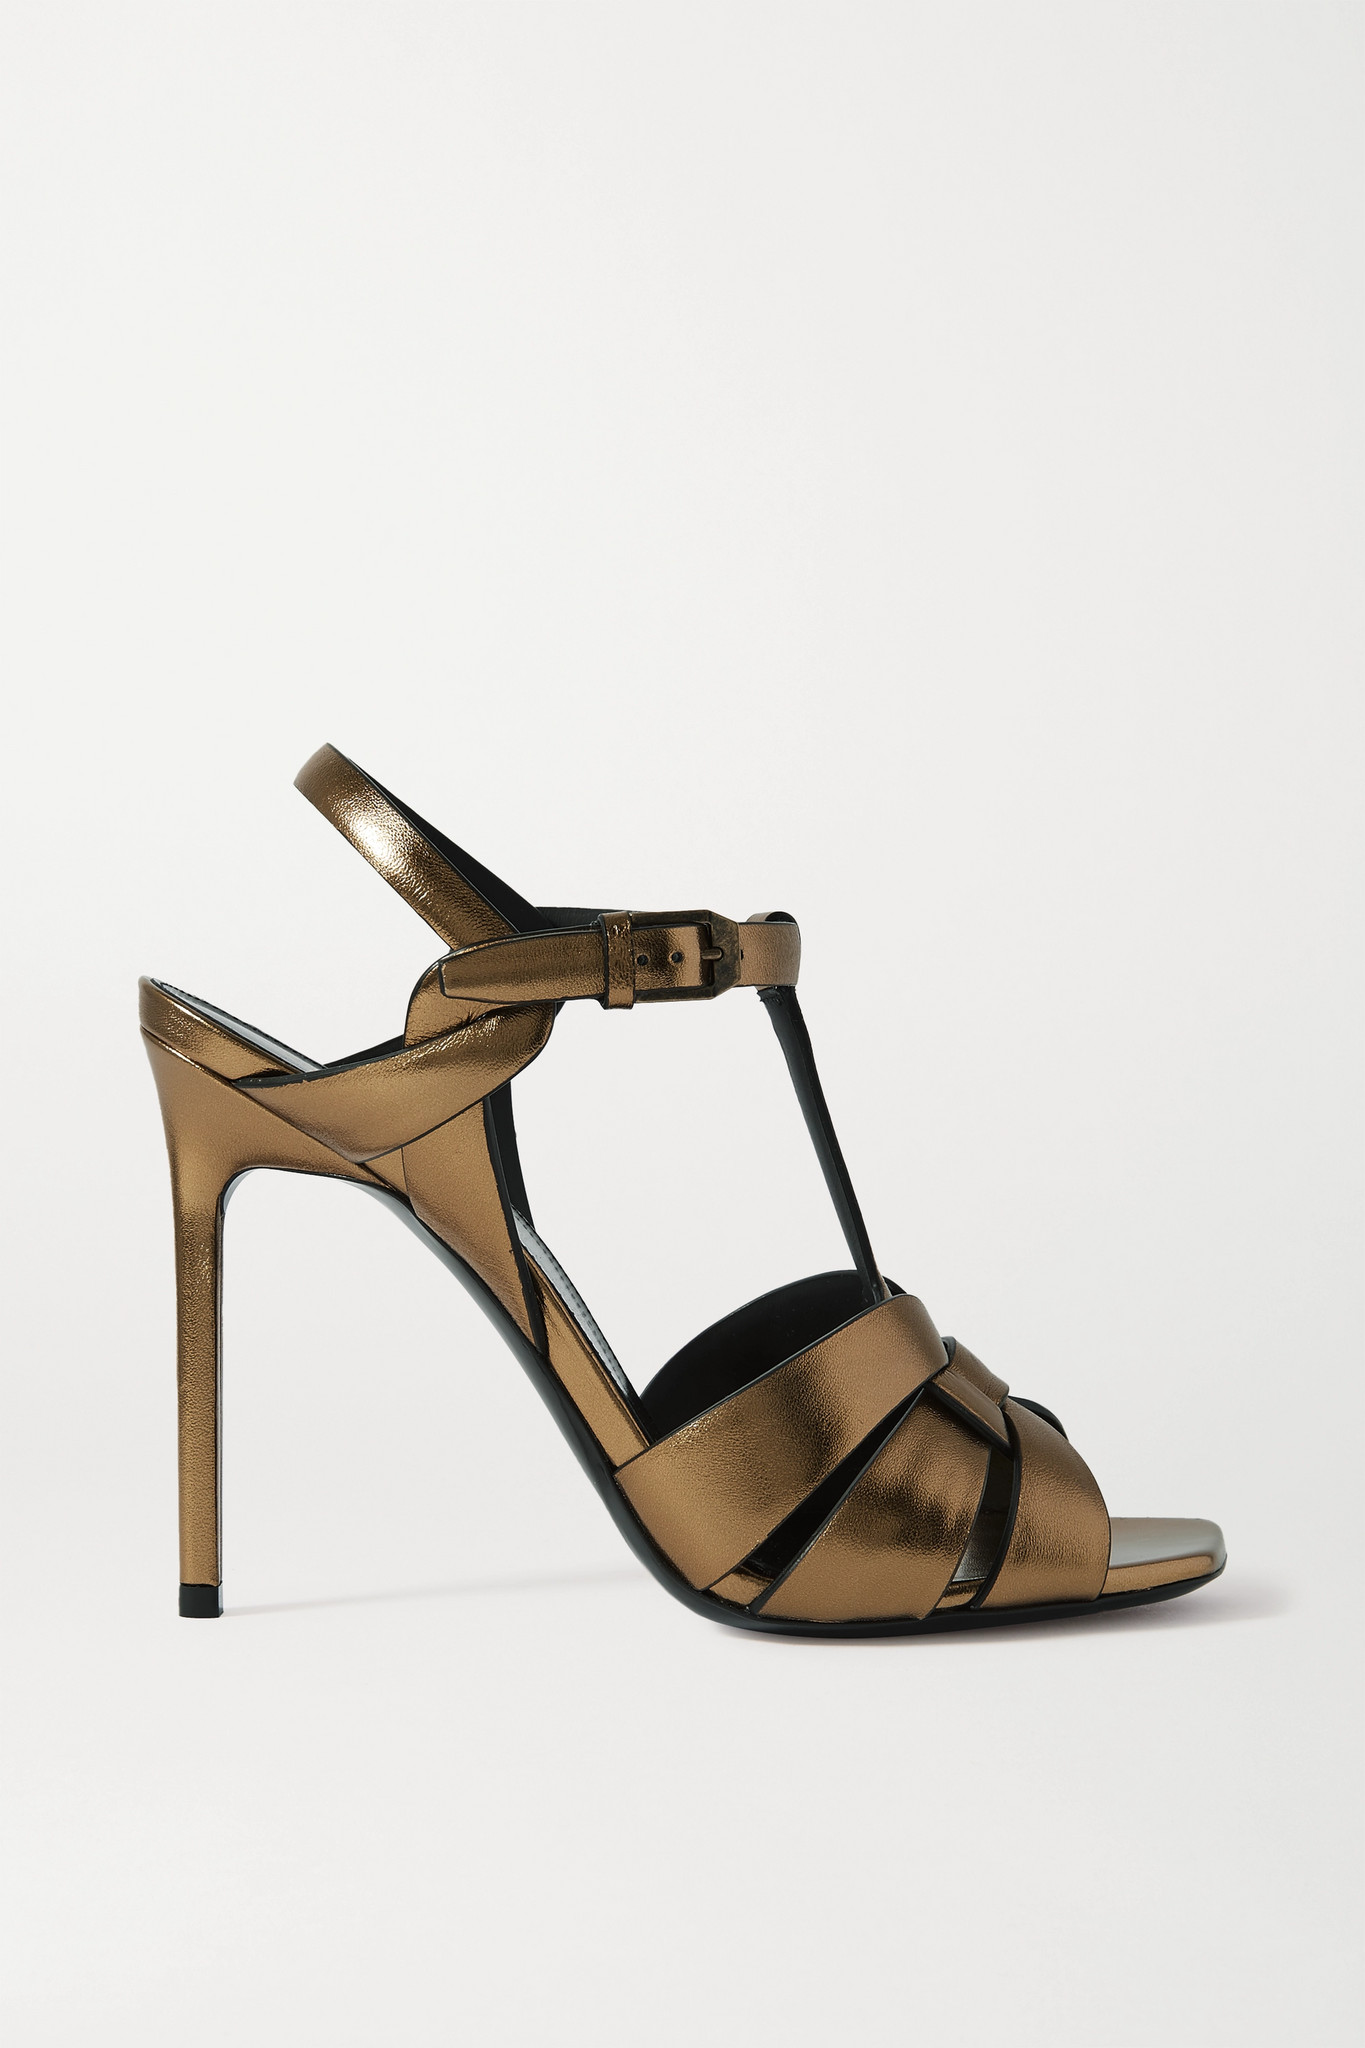 SAINT LAURENT - Catri Woven Metallic Leather Sandals - Gold - IT39